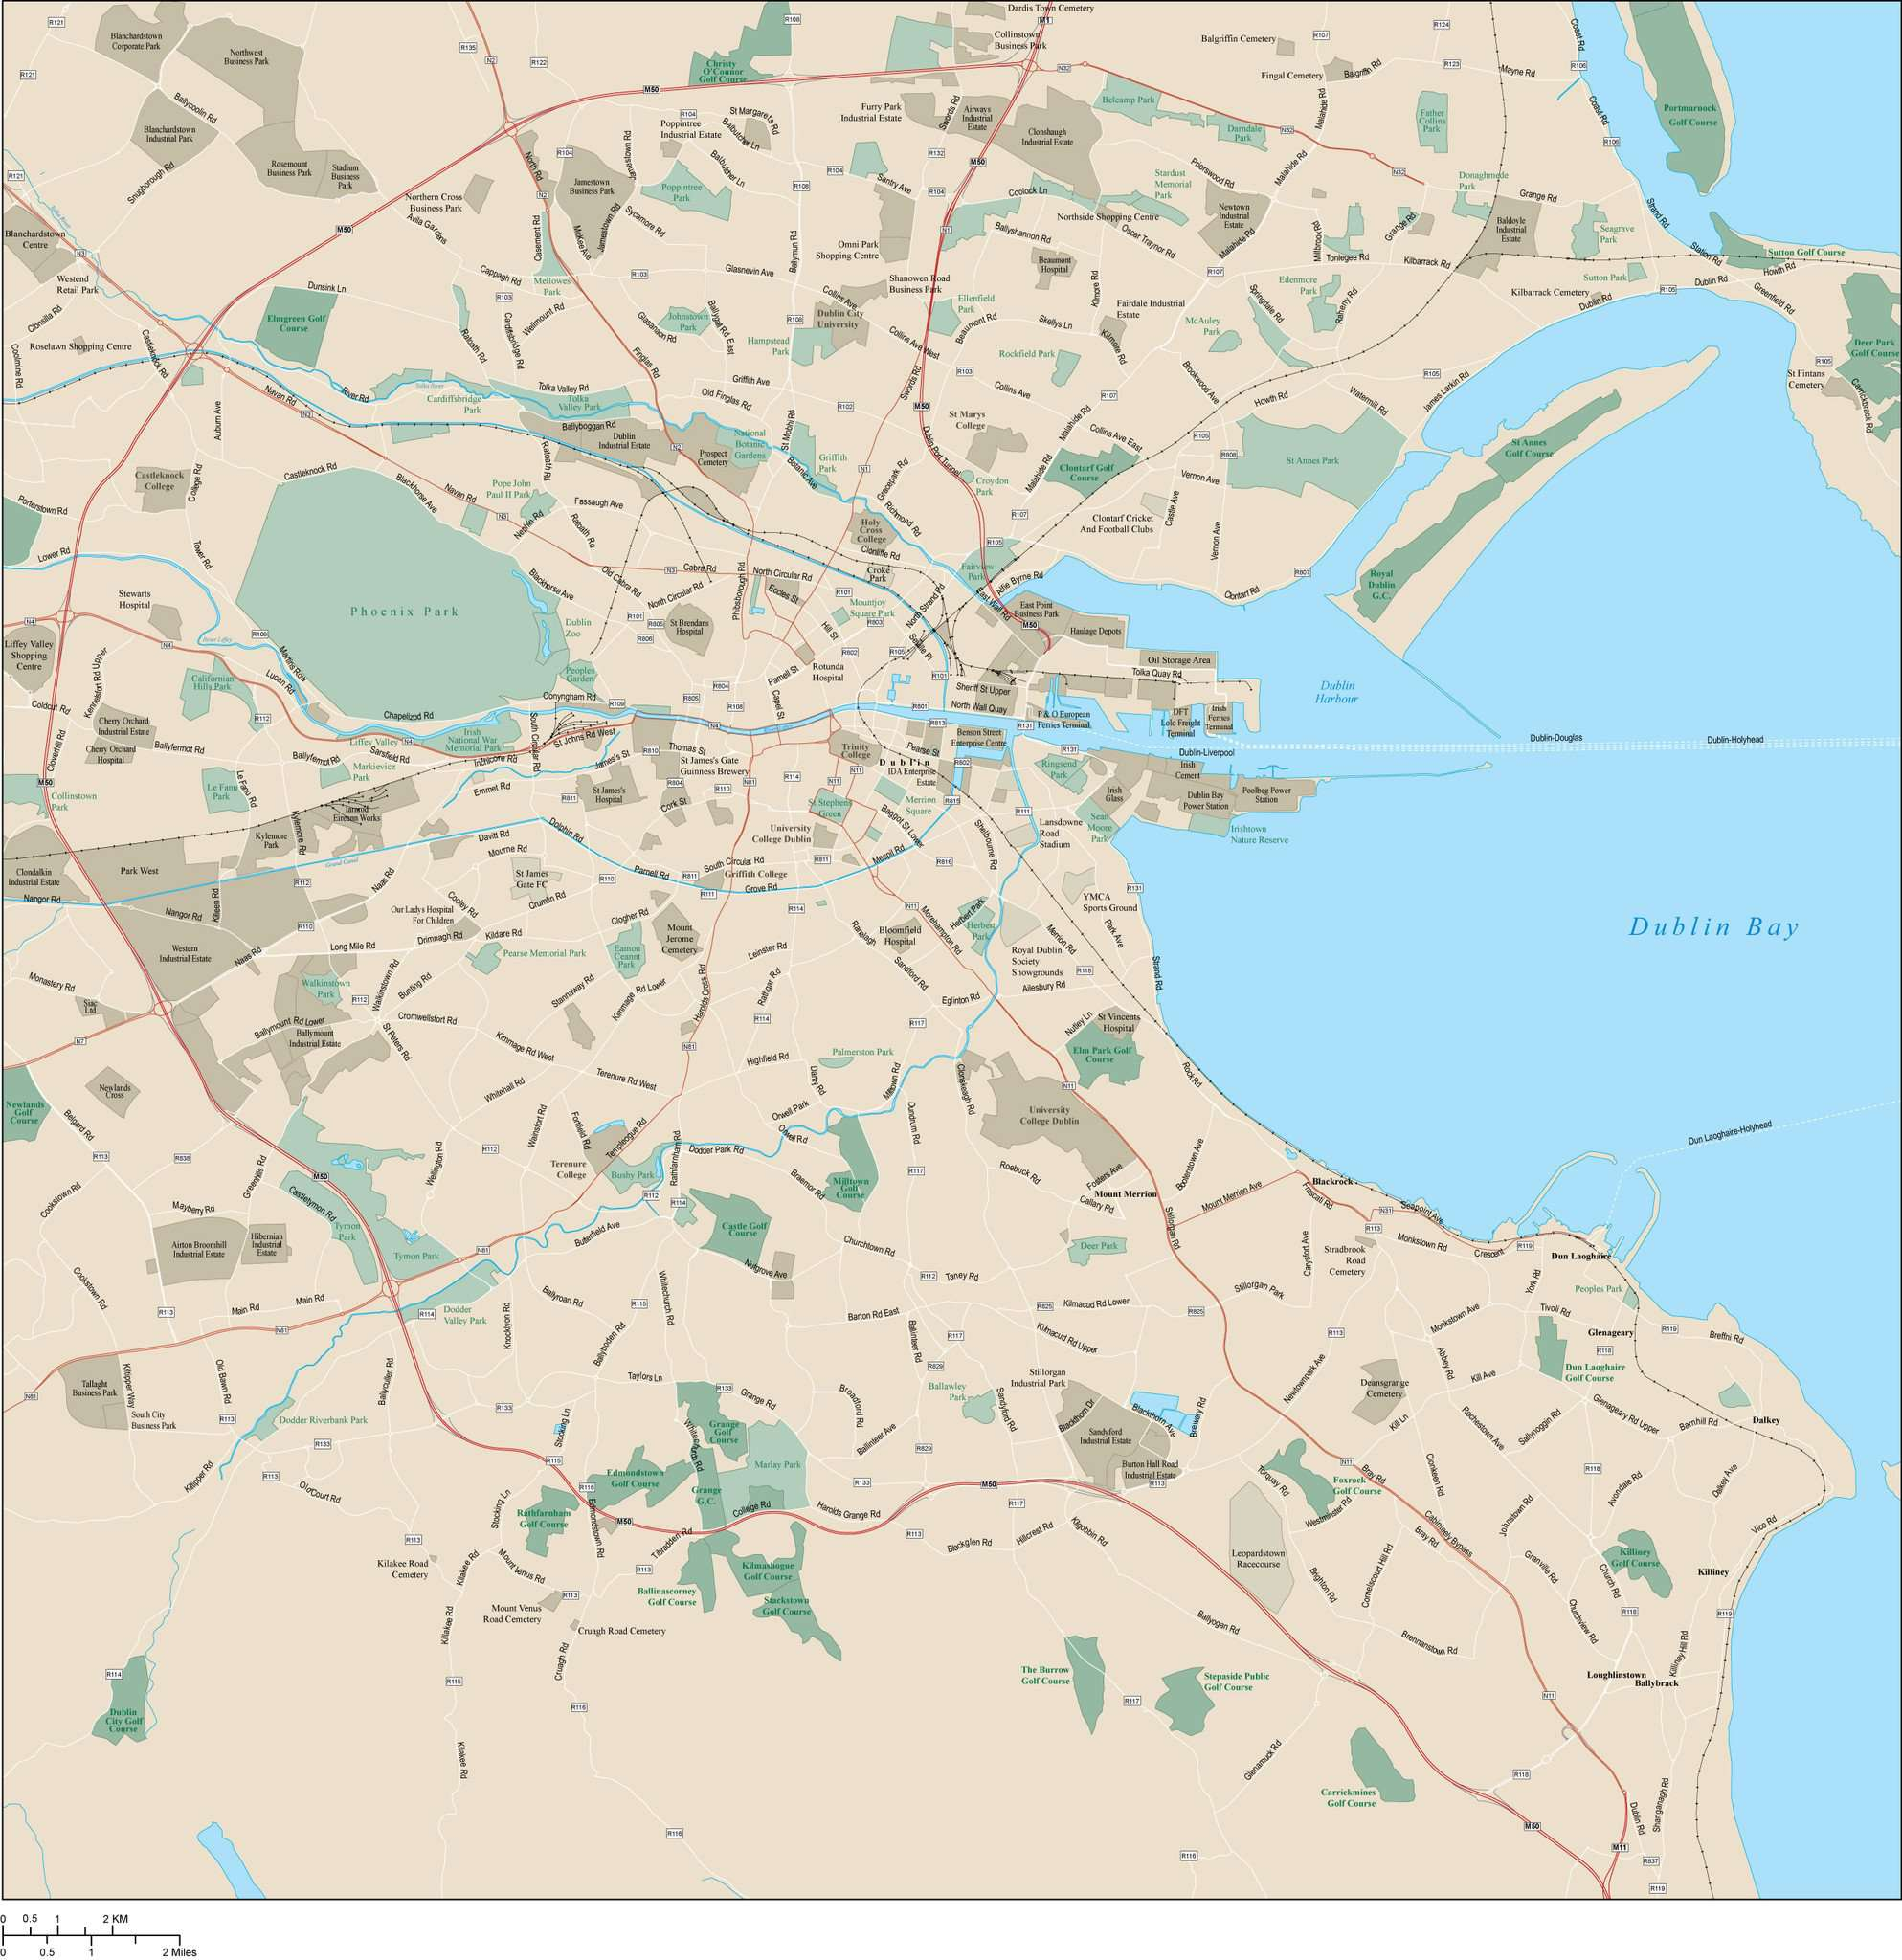 Dublin Map Adobe Illustrator vector format – Map Resources on